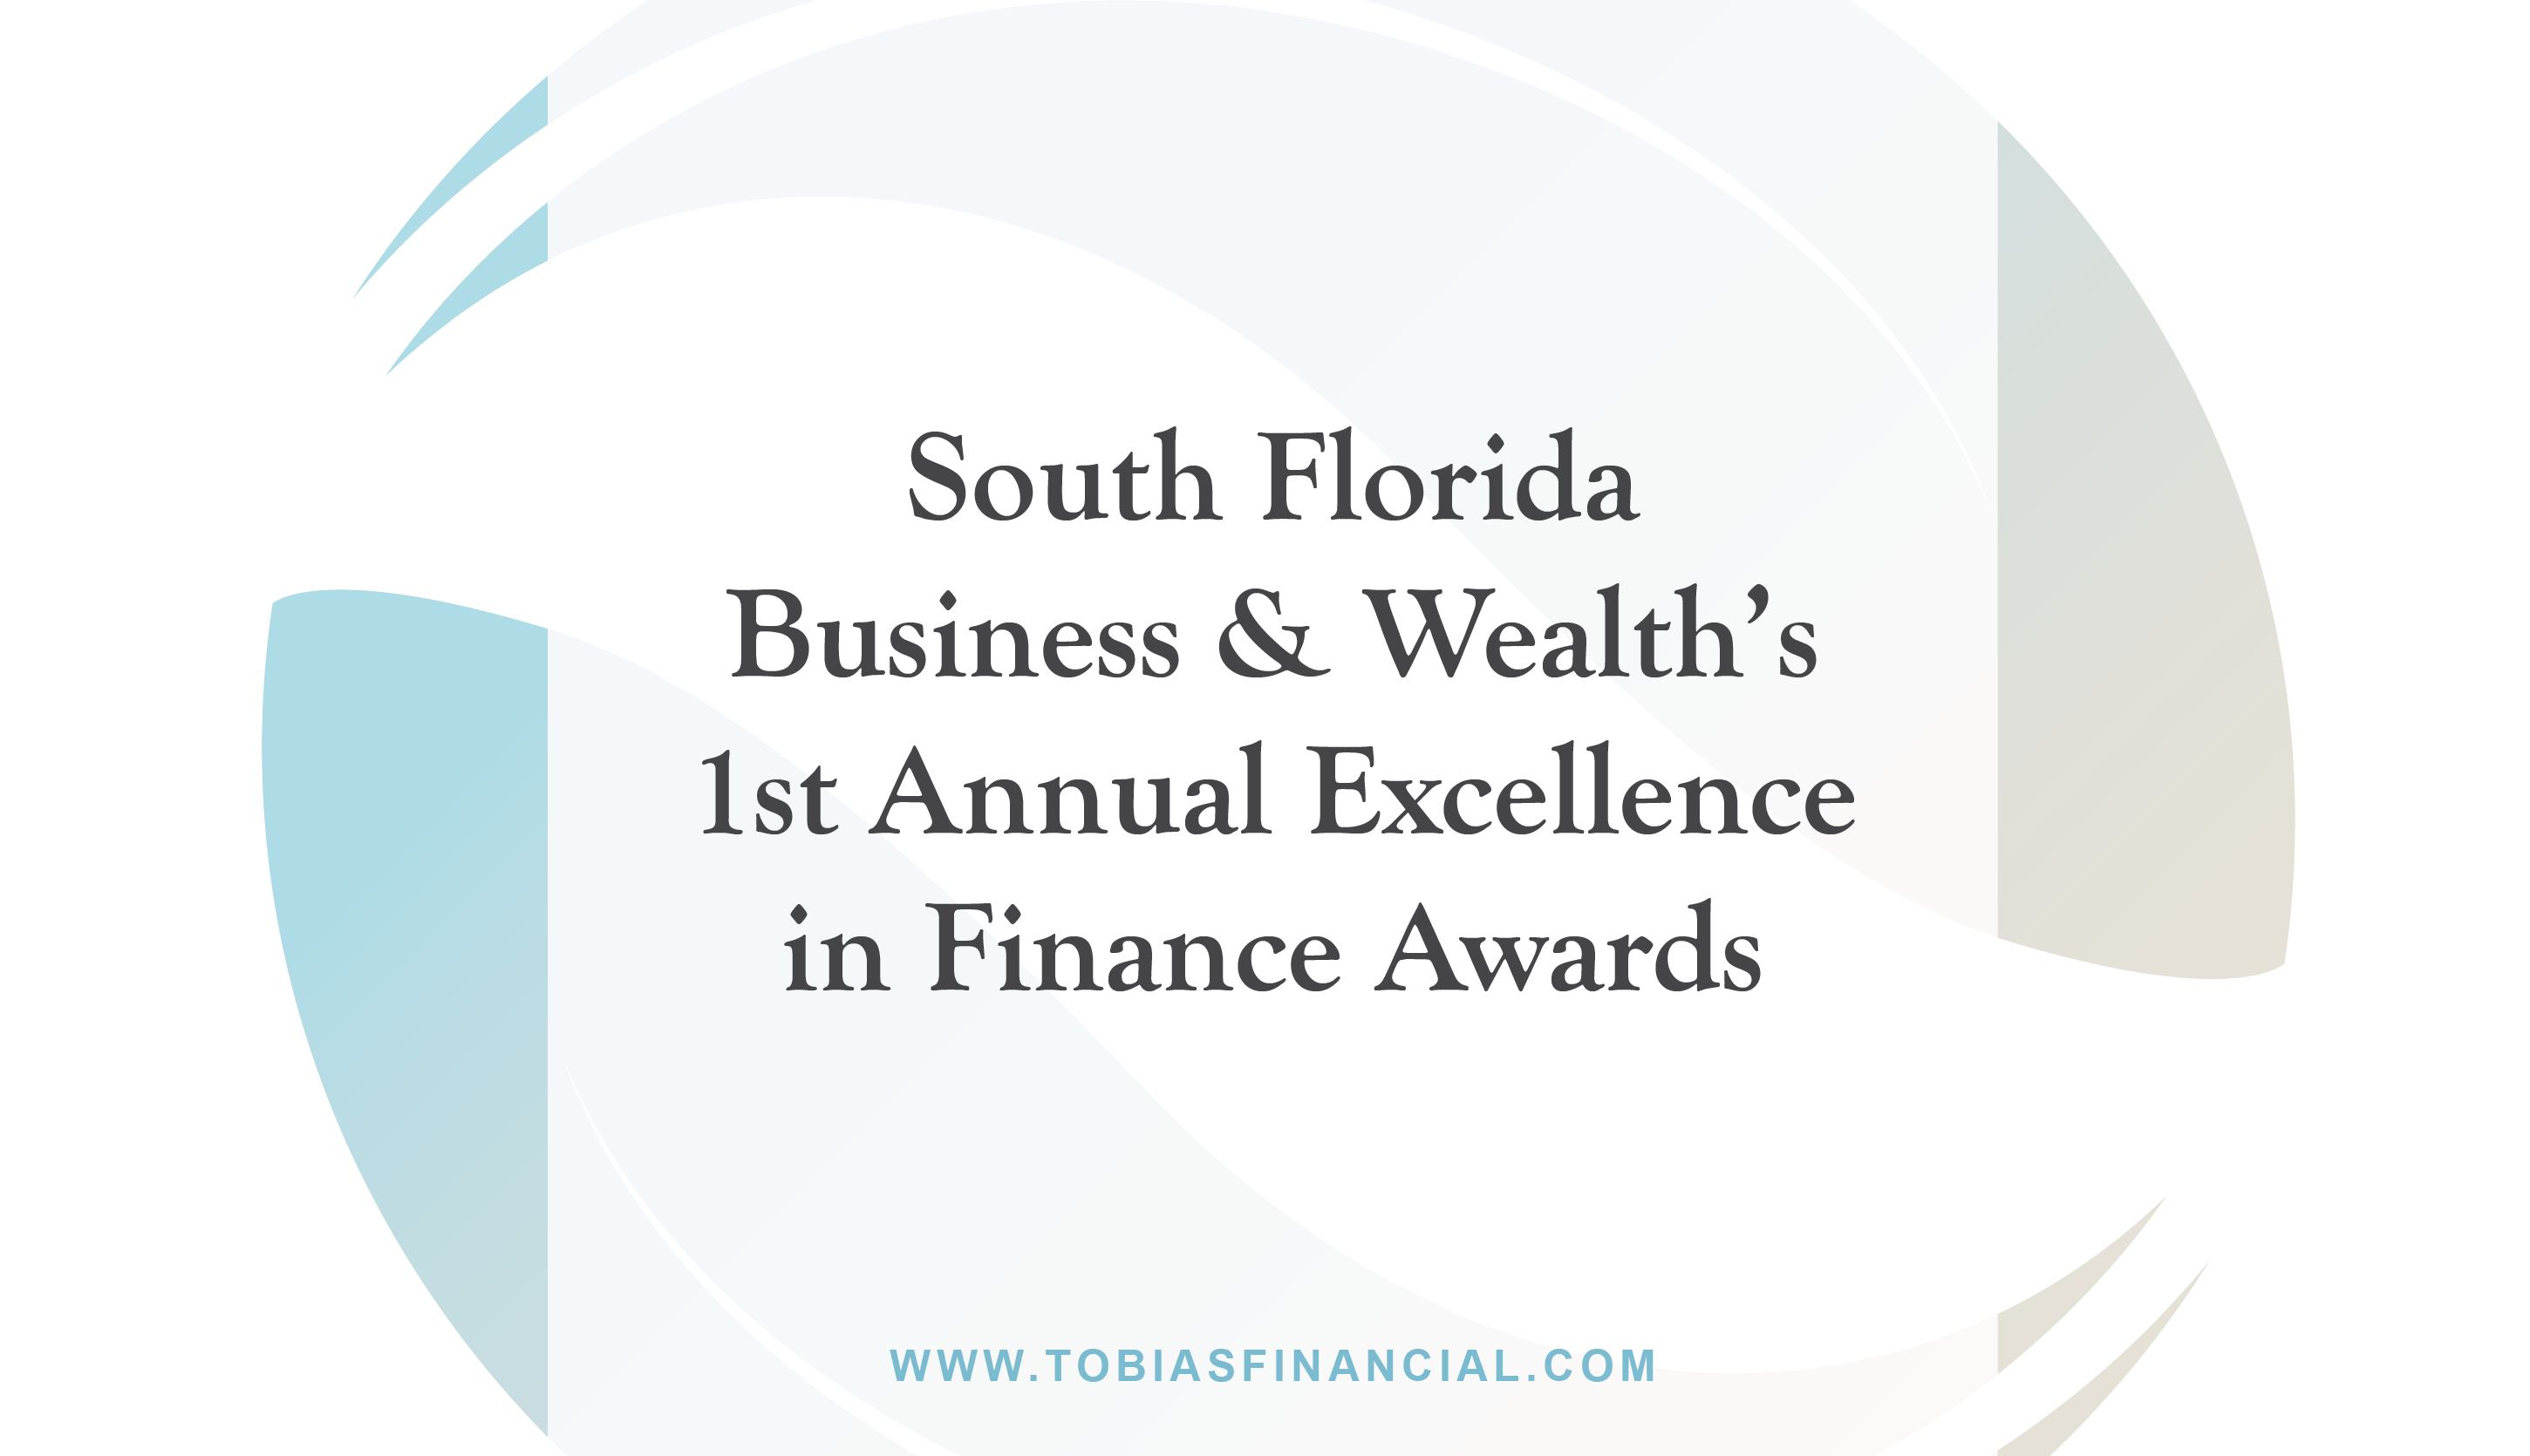 South Florida Business & Wealth's 1st Annual Excellence in Finance Awards